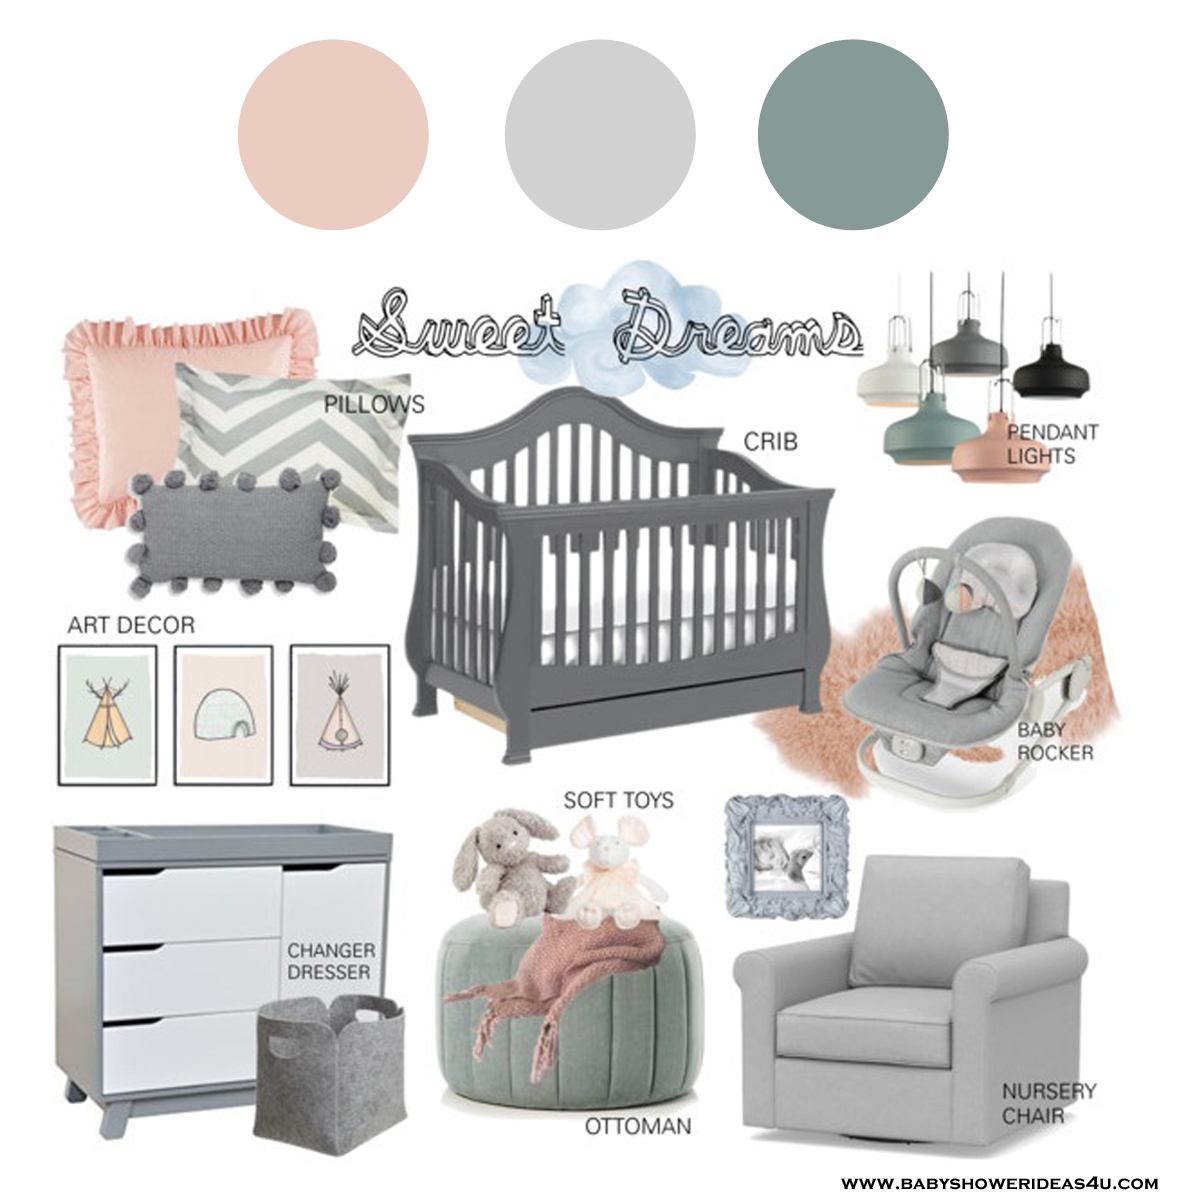 sweet-dreams-baby-nursery